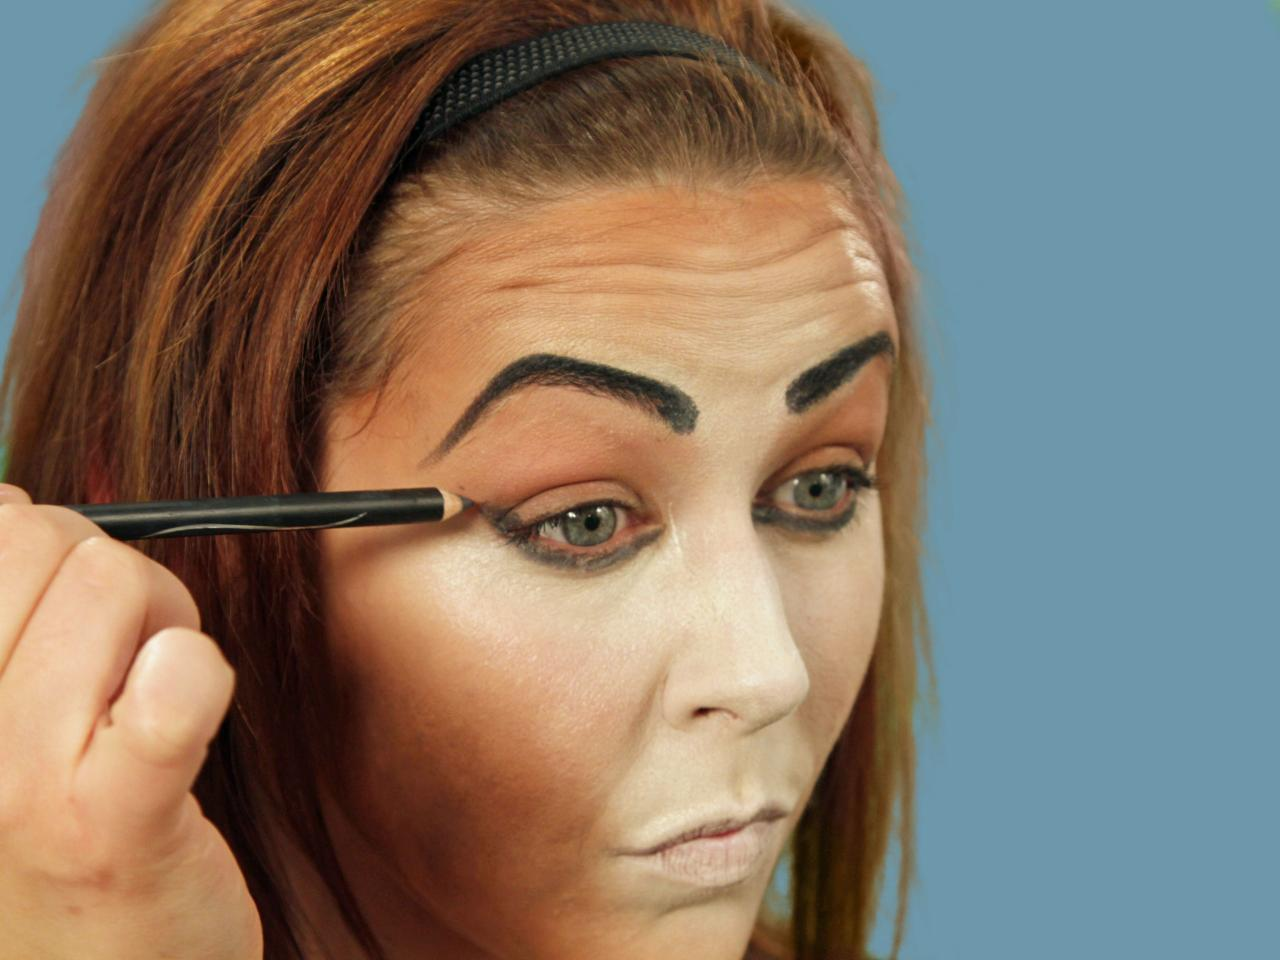 darken brows for halloween cat makeup - Cat Eyes Makeup For Halloween